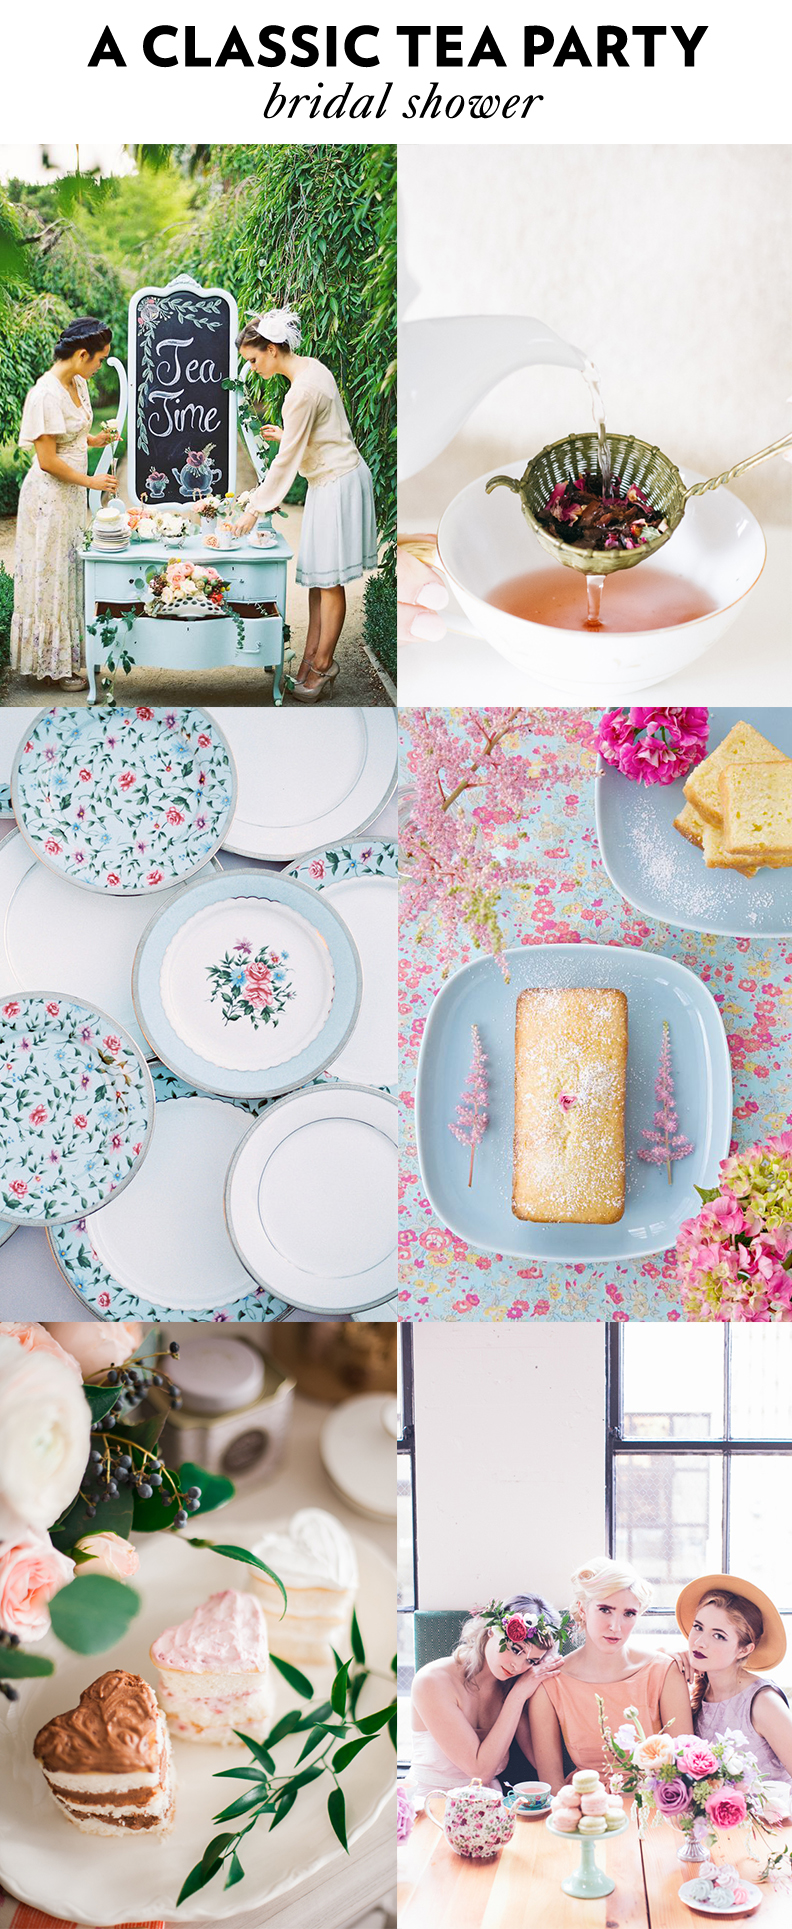 4 Tea Party Bridal Shower Themes - Ultimate Bridesmaid